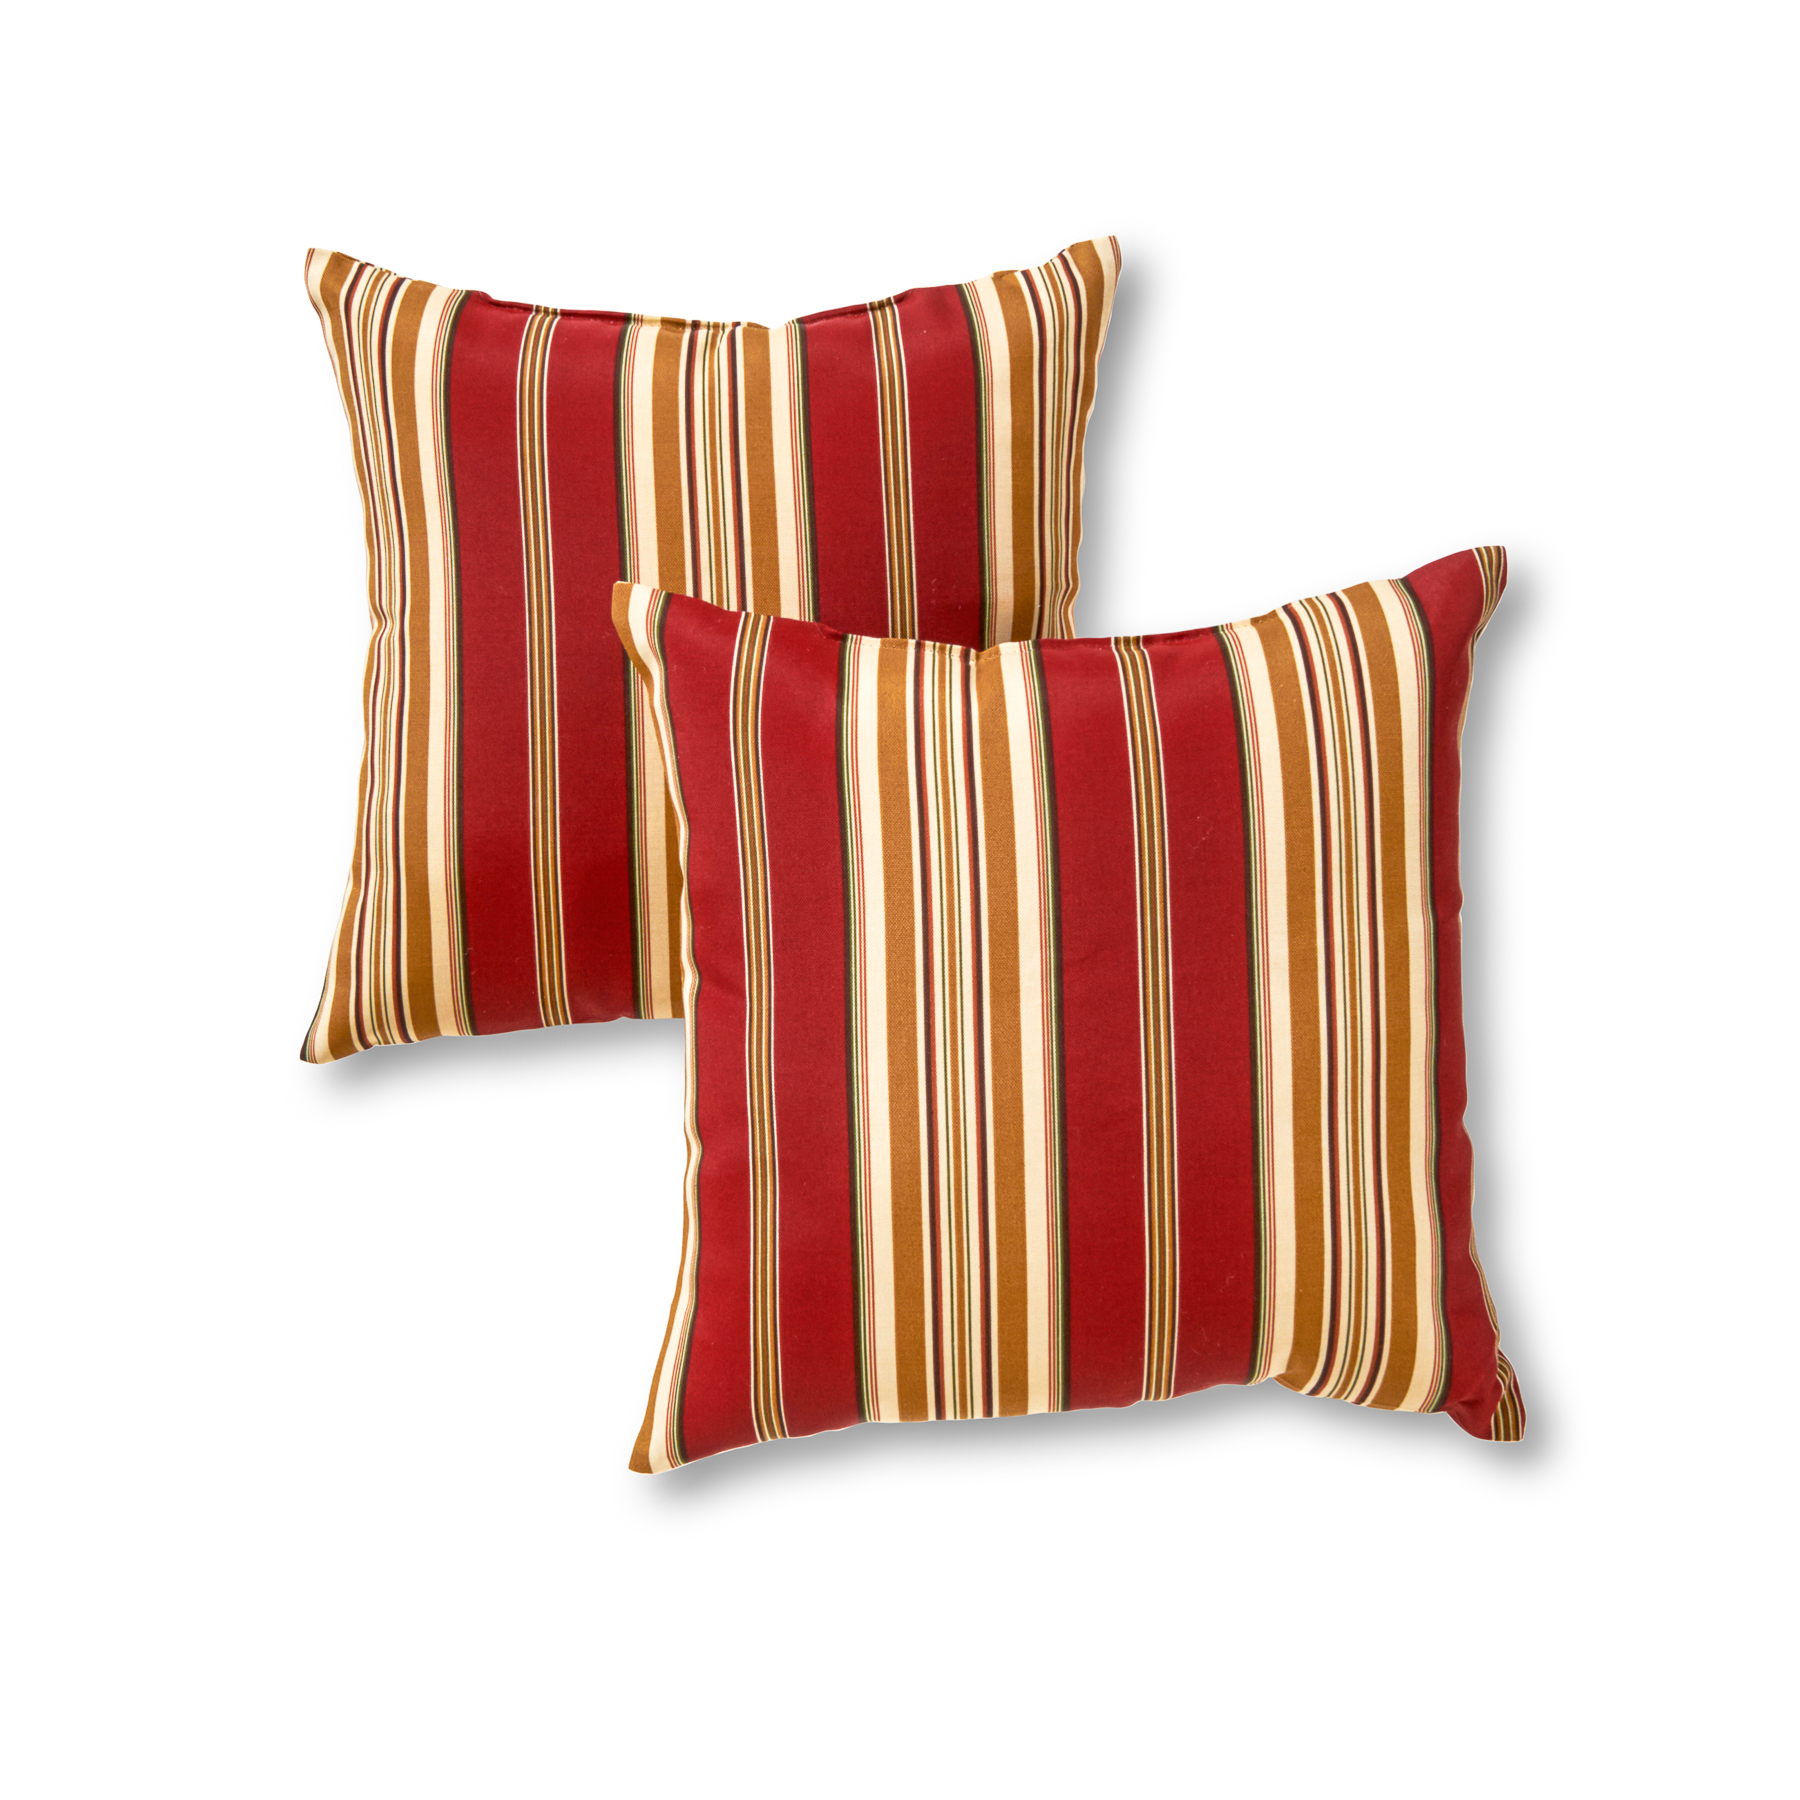 Roma Stripe 17 x 17 in. Outdoor Accent Pillow, Set of 2